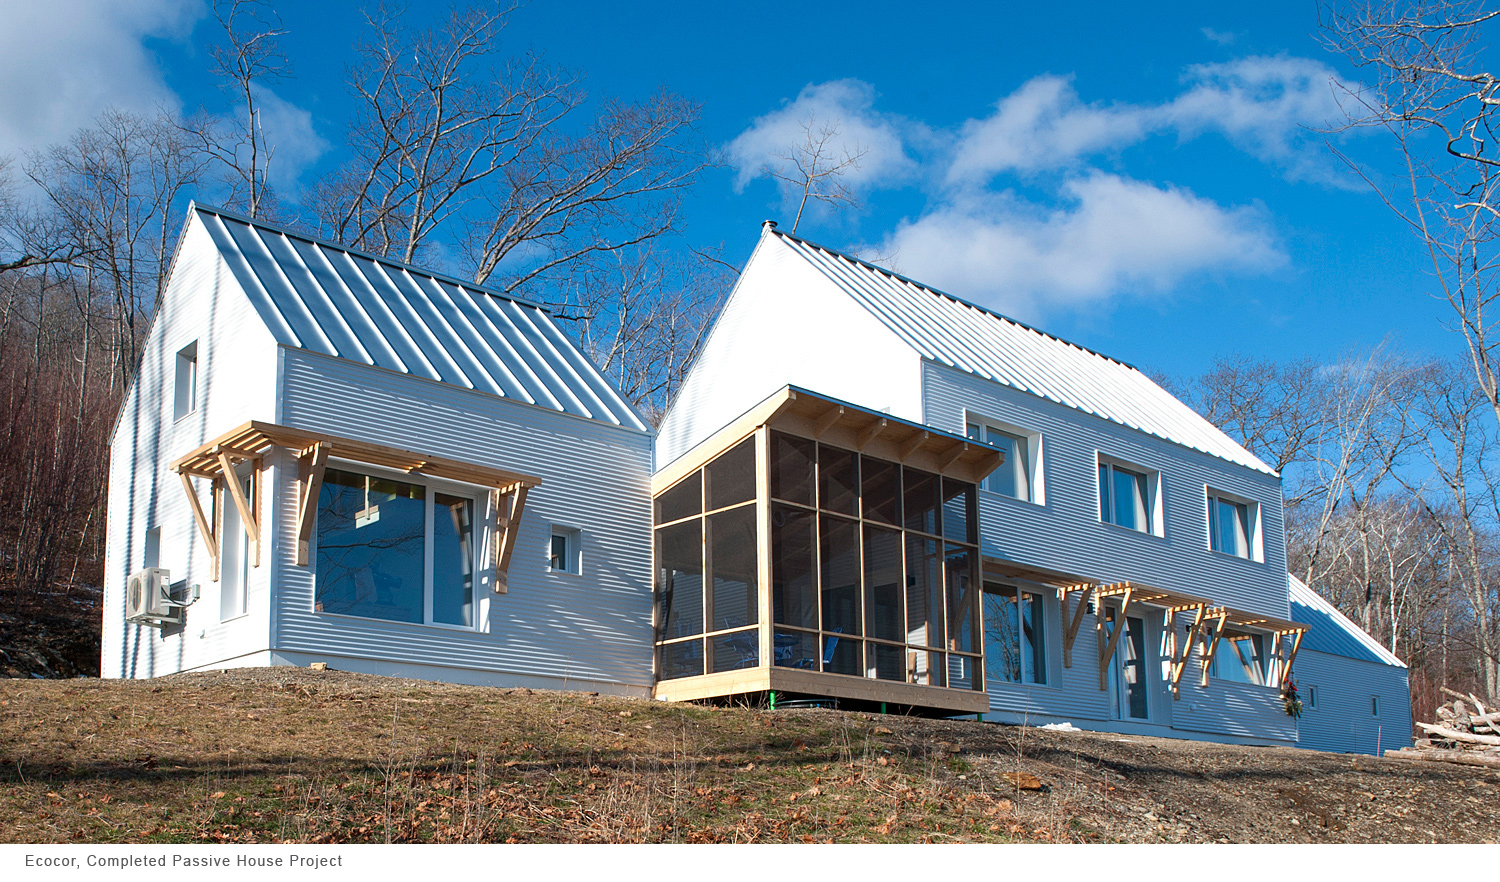 Ecocor Passive House Project